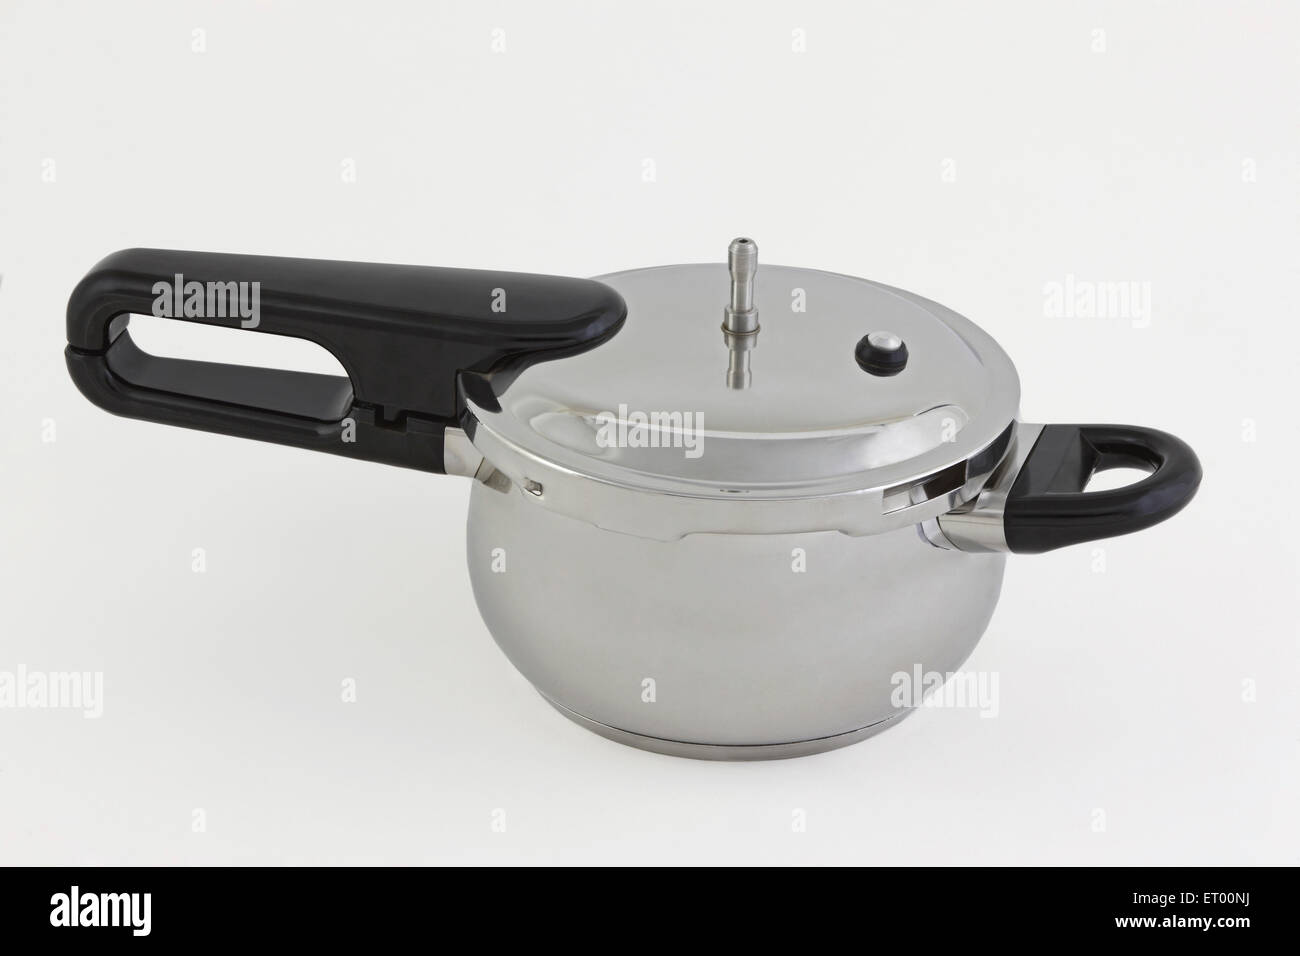 Pressure cooker ; stainless steel ; kitchen ware ; India - Stock Image